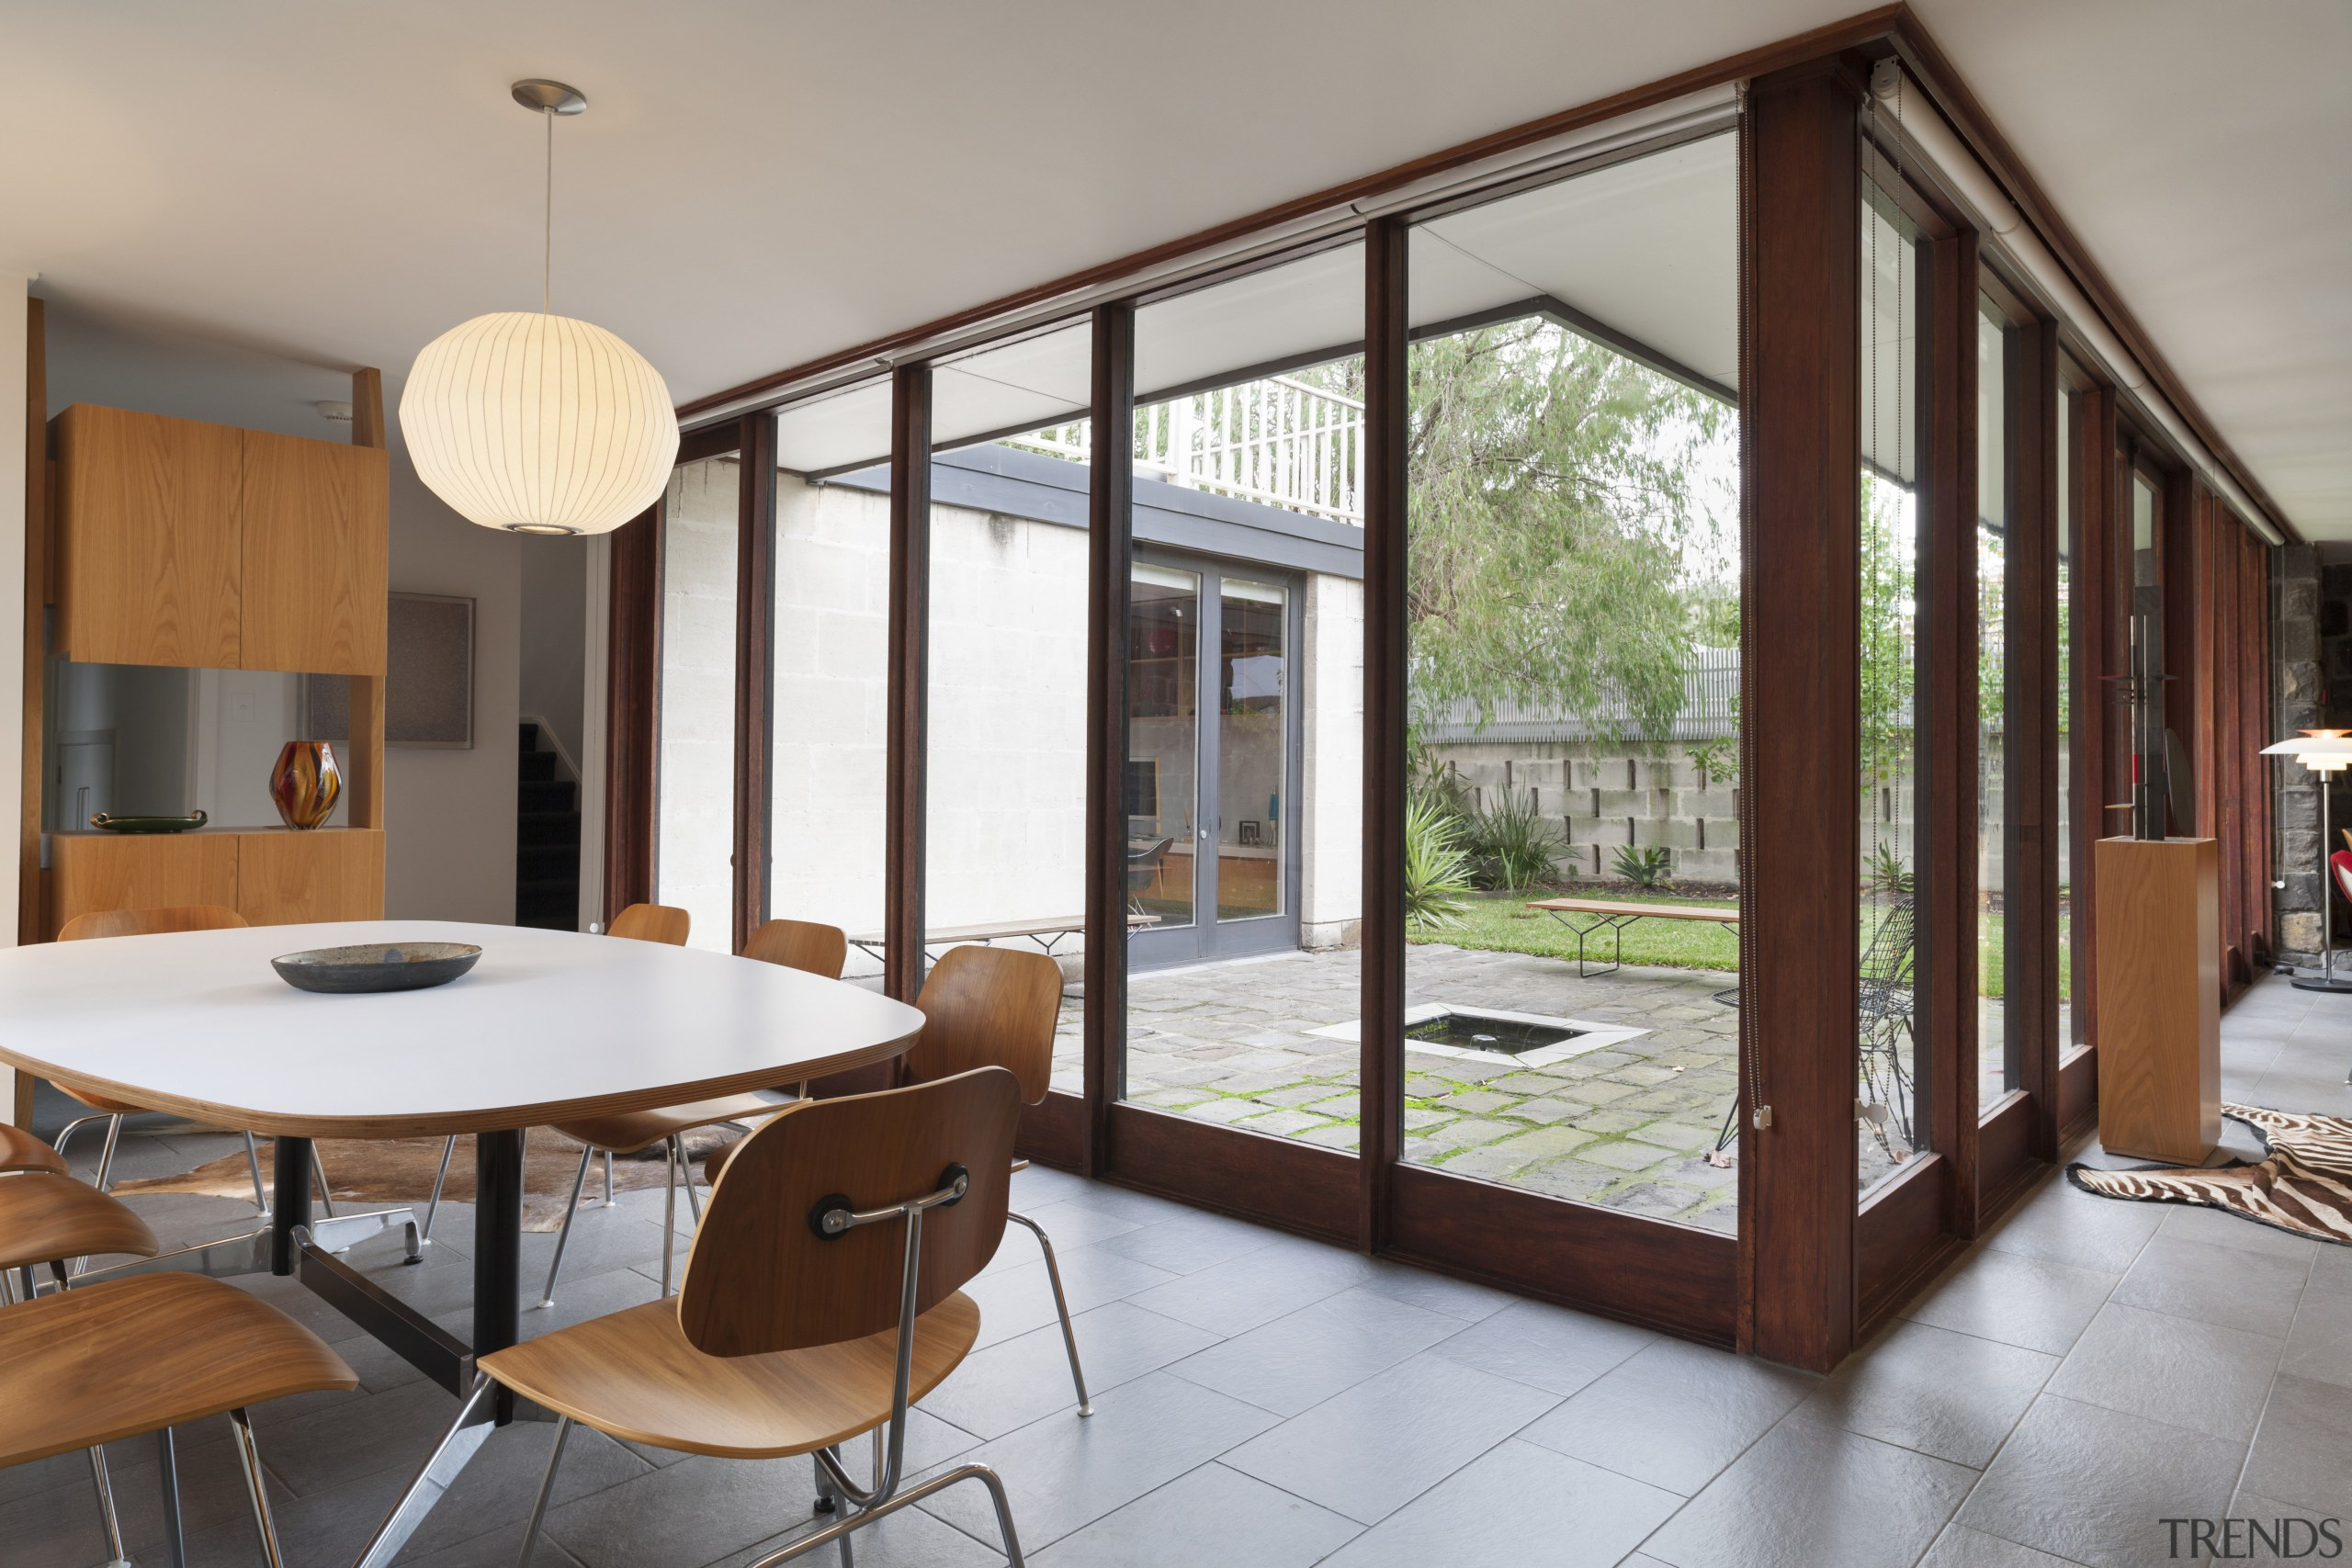 As part of a renovation of this Mid-century architecture, door, house, interior design, real estate, window, gray